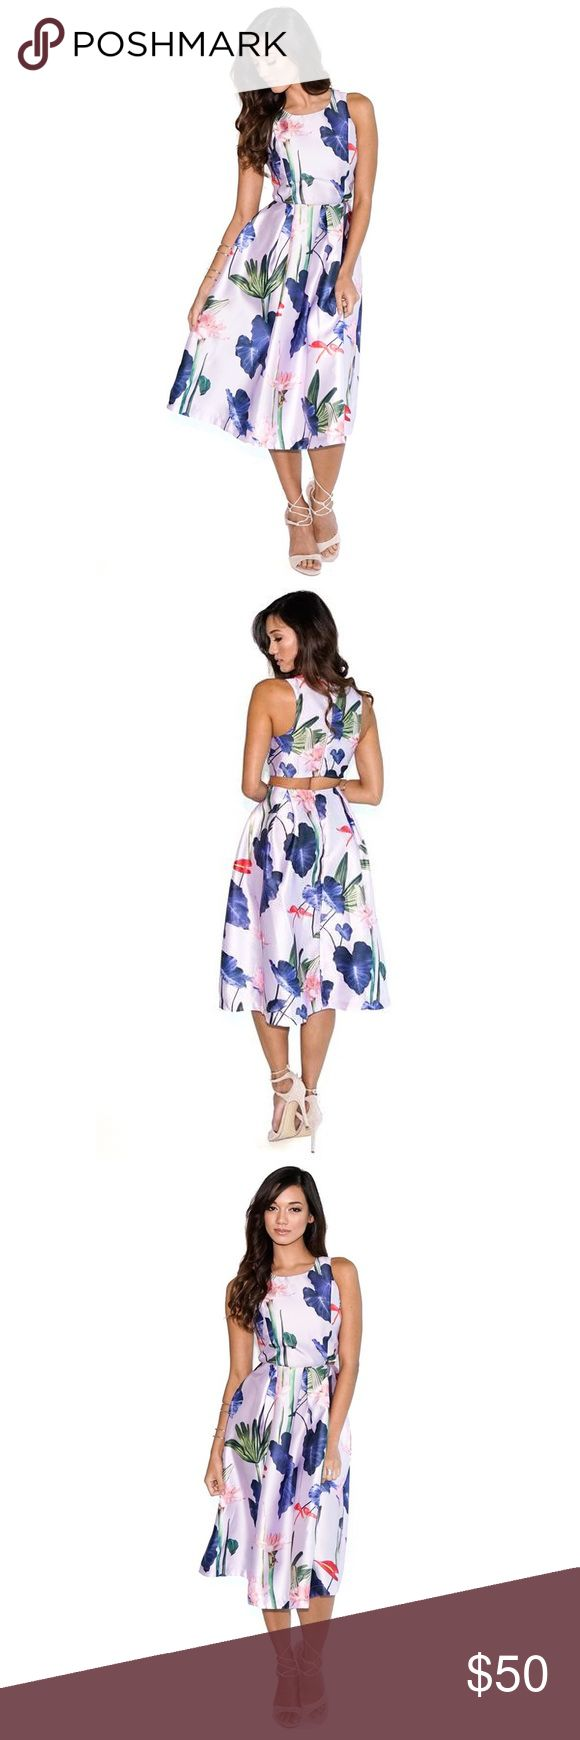 ▫️LAST 1▫️FLORAL MIDI DRESS We wanted to change it up this season adding more color and girly to our closet so this Floral Flared Dress was the result. Featuring a nice velvet purple tone along with a beautiful detailed floral print design all-over, a round neckline, back rectangle cut-out, midi-length and a sleeveless cut. Pair it with a open heel and brunch with the girls never looked this good.Purple / Multi-colored Floral / Tropic Print  Halter/Round Neckline Sleeveless Back cut-out 100%…